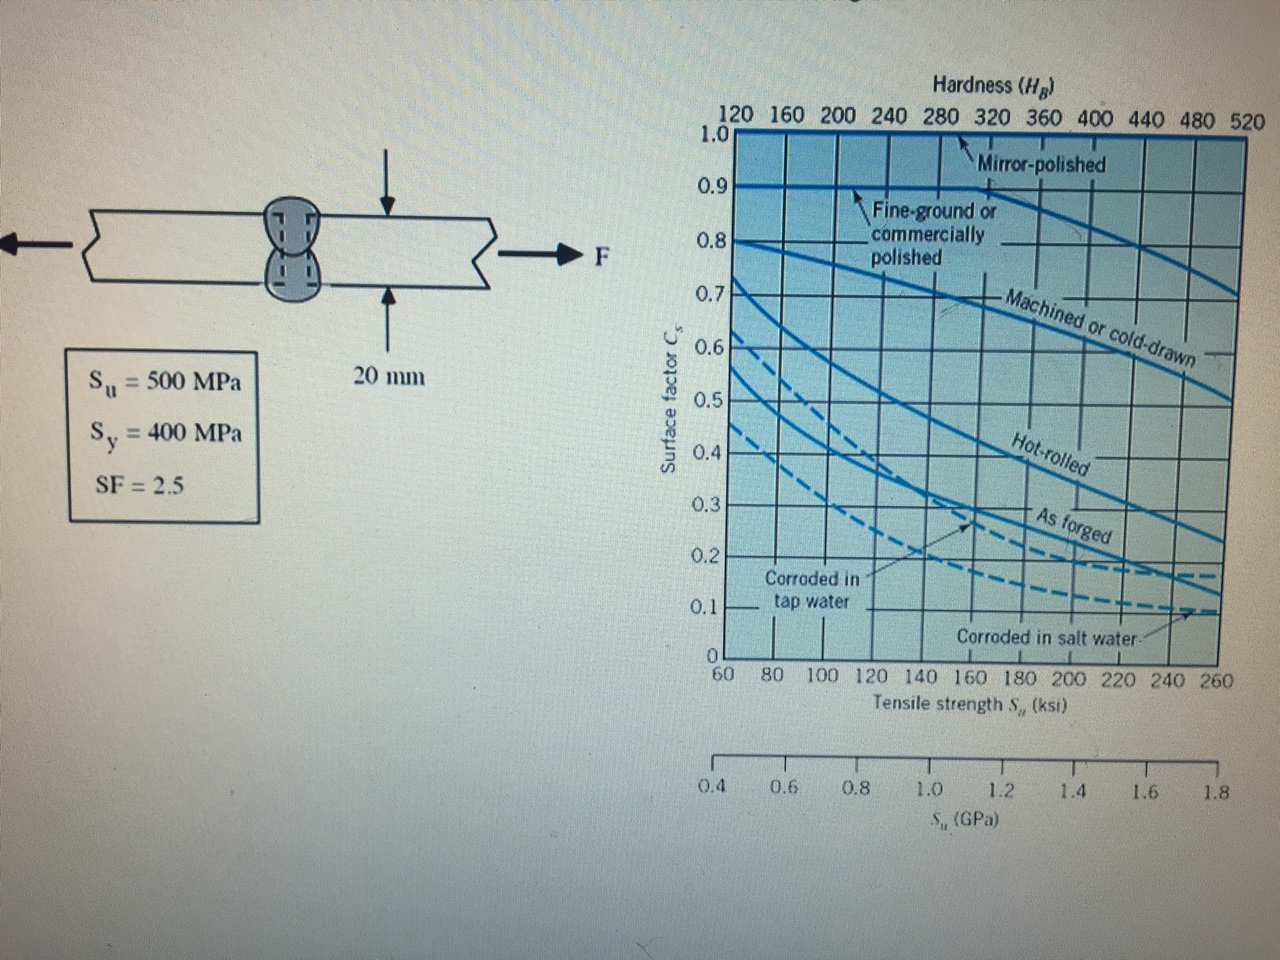 Solved Two 20 Mm Steel Plates Are Butt Welded Together B Welding Electrode Diagram Hardness Hg 120 160 200 240 280 320 360 400 440 480 520 10